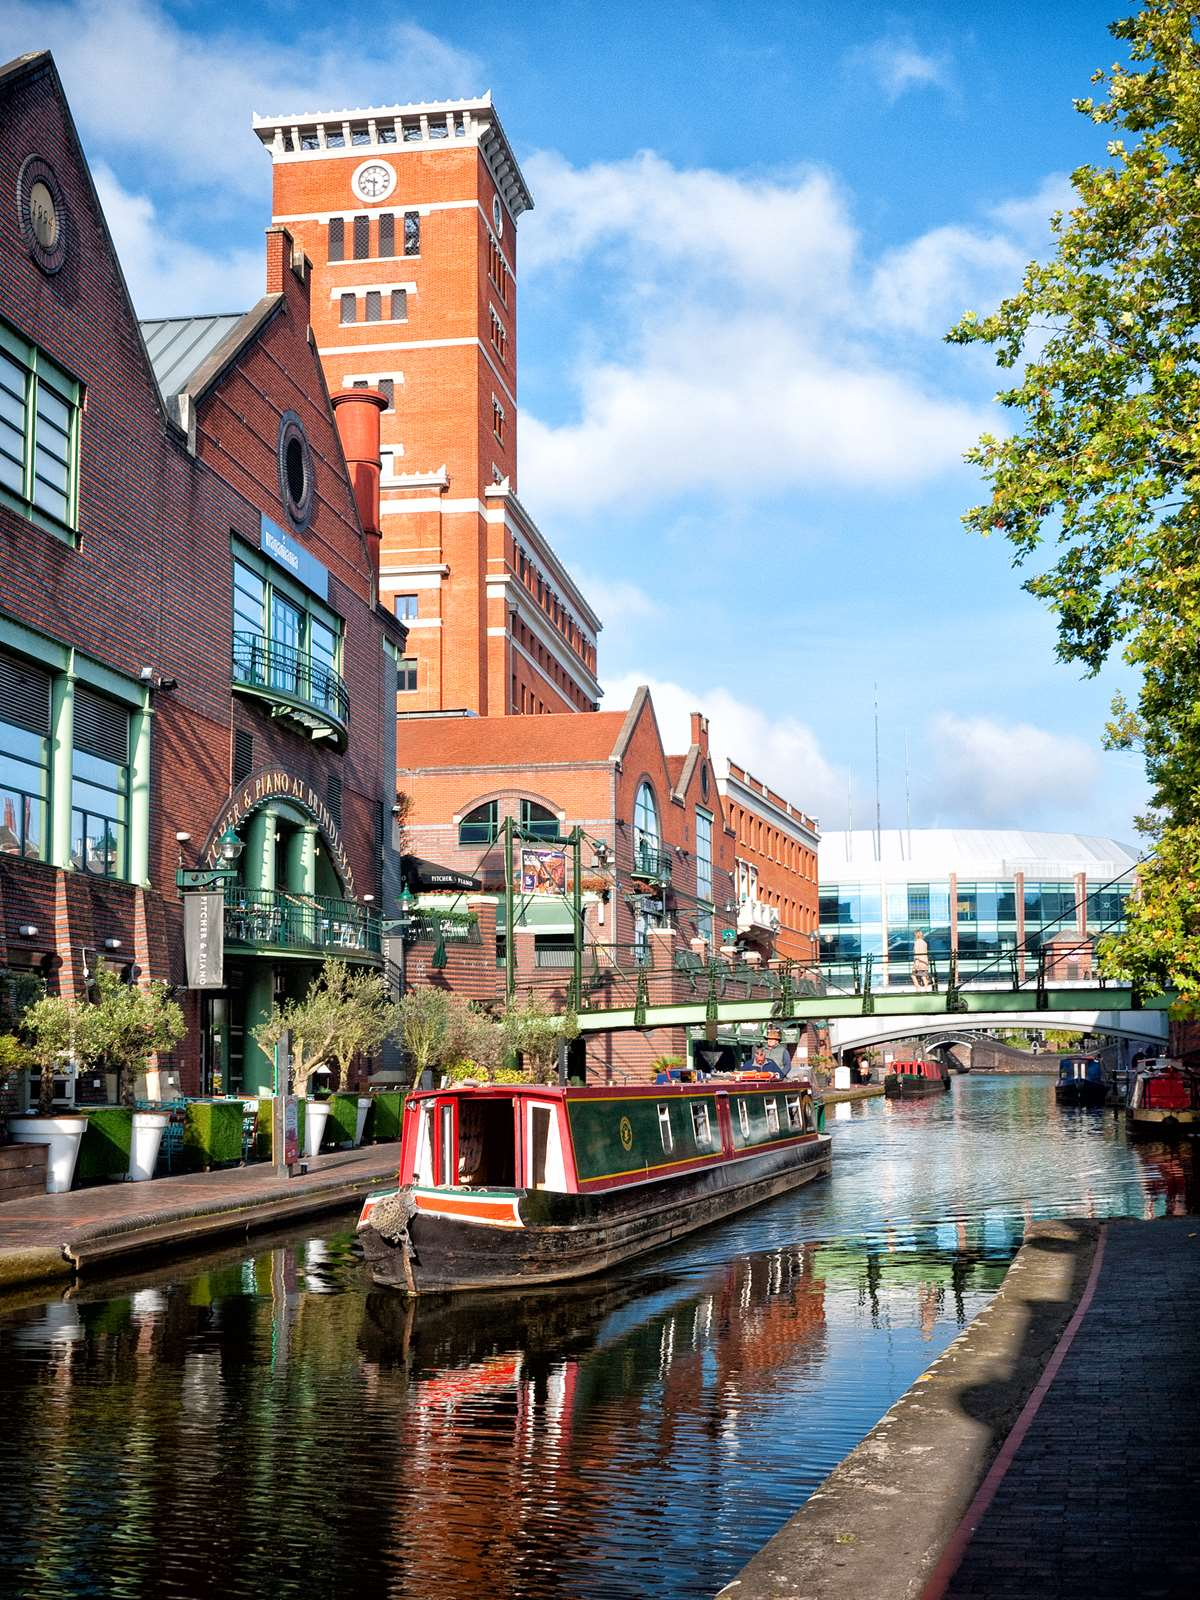 Back along Brindley Place towards the Barclaycard Arena.